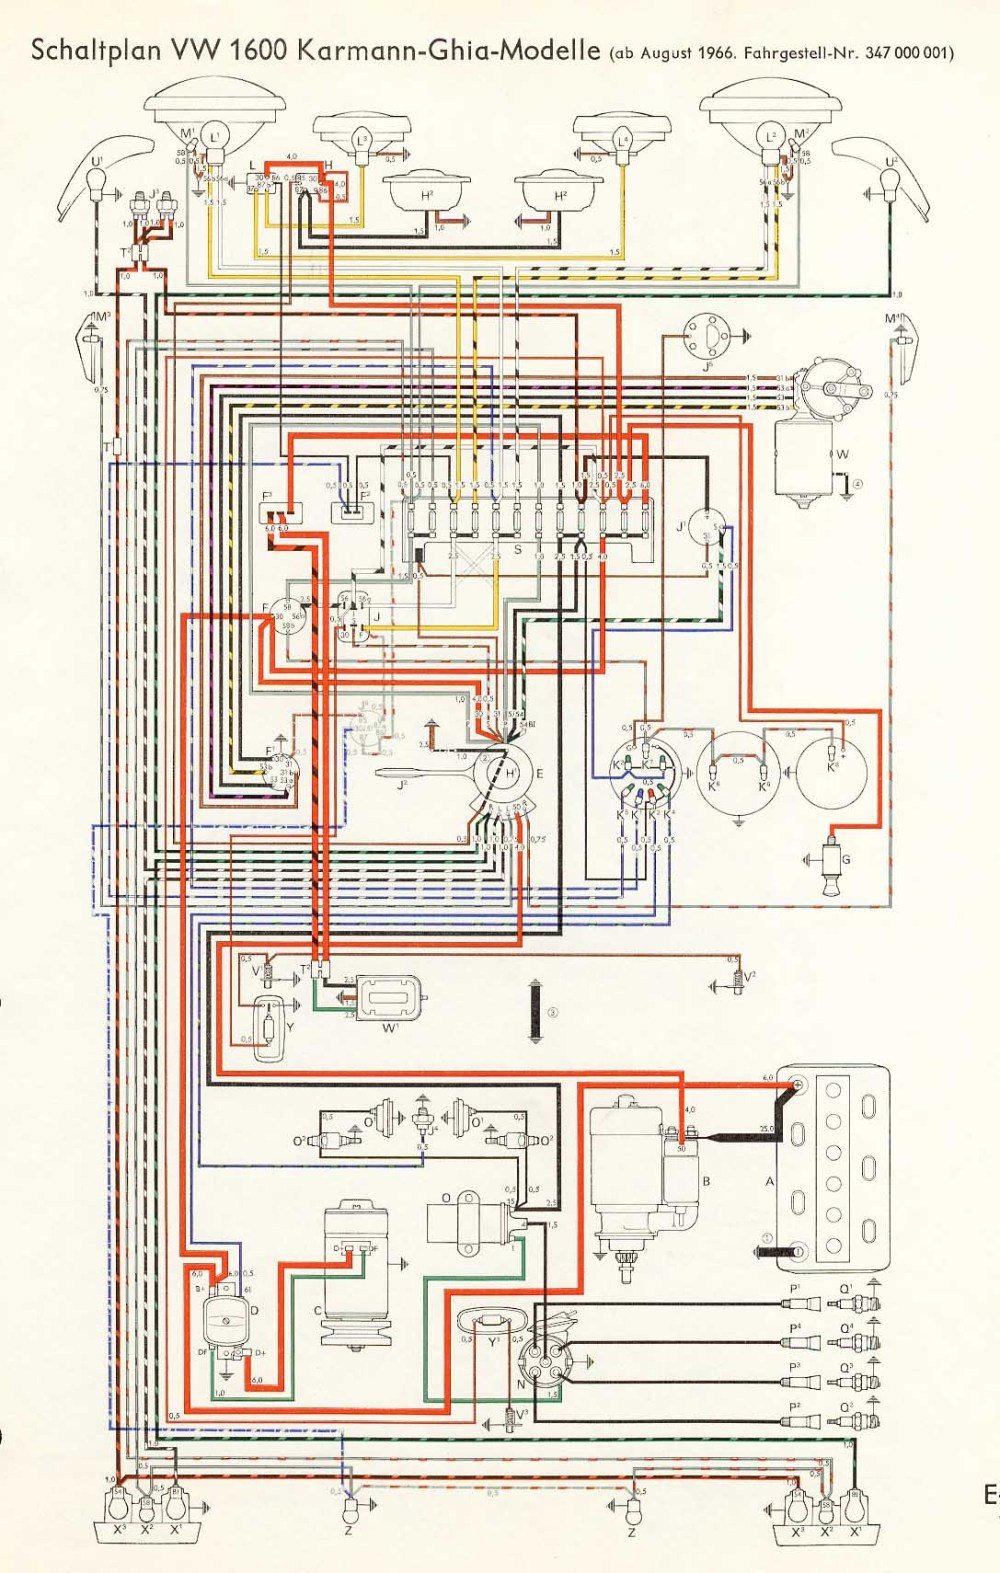 medium resolution of other diagrams 1967 plymouth fury wiring diagram 1966 vw 1600 karmann ghia wiring diagram